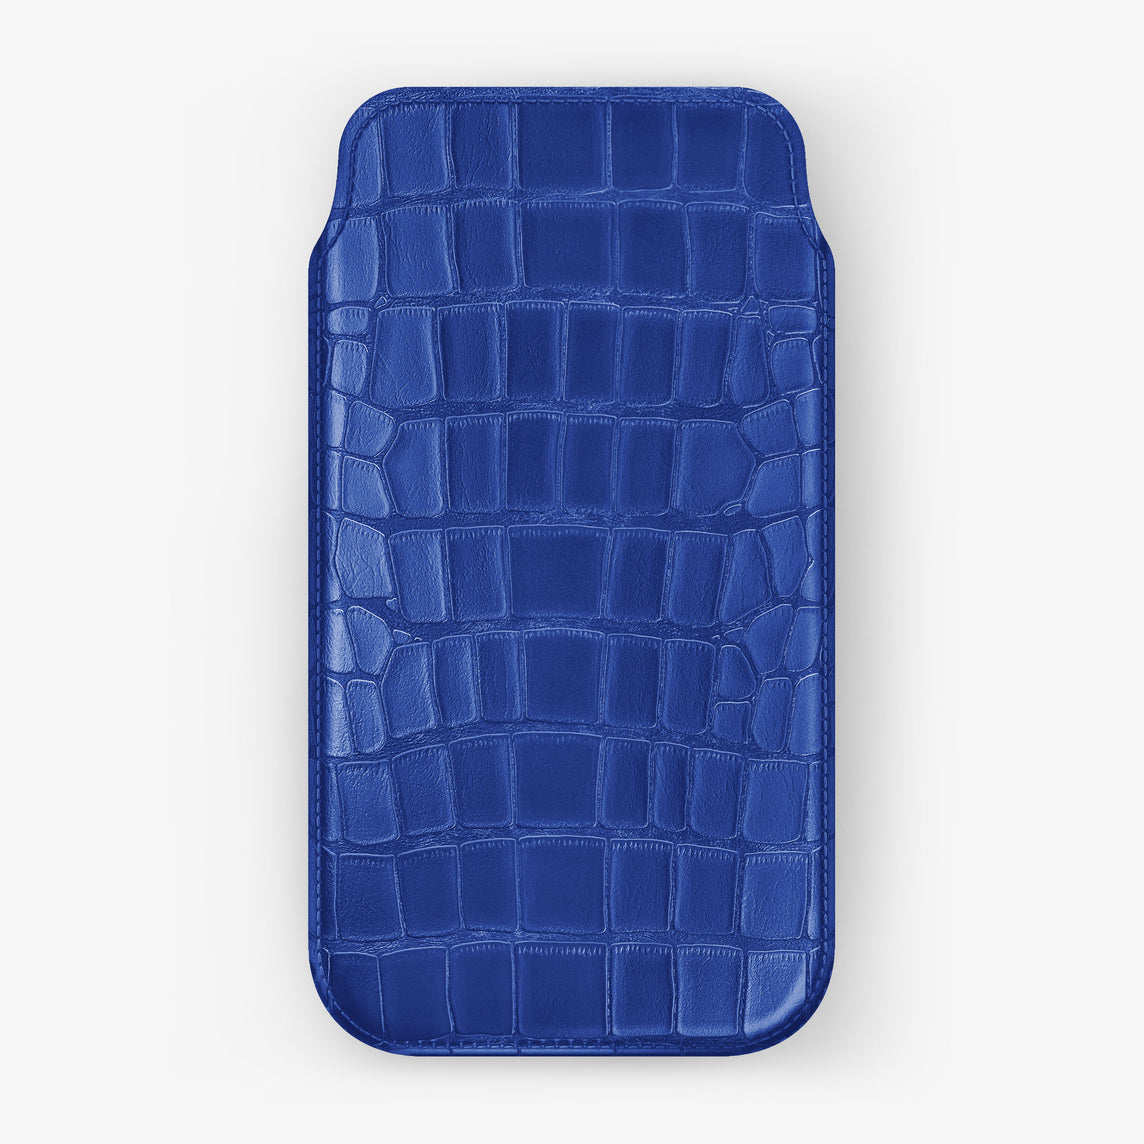 Alligator Sleeve Case iPhone 11 Pro Max | Peony Blue - Stainless Steel